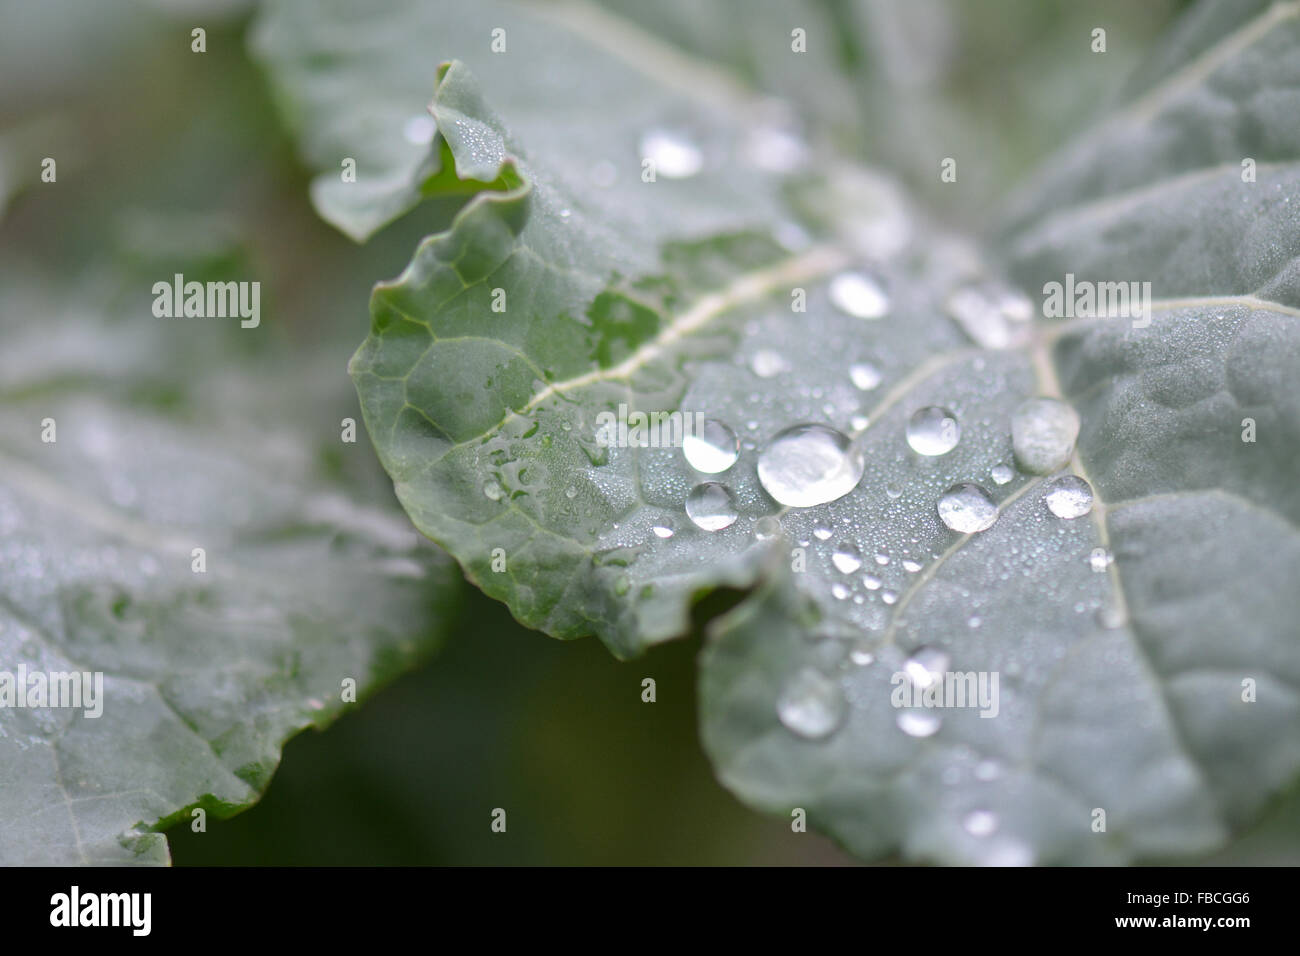 drops of dew on purple sprouting broccoli plant leaves - Stock Image